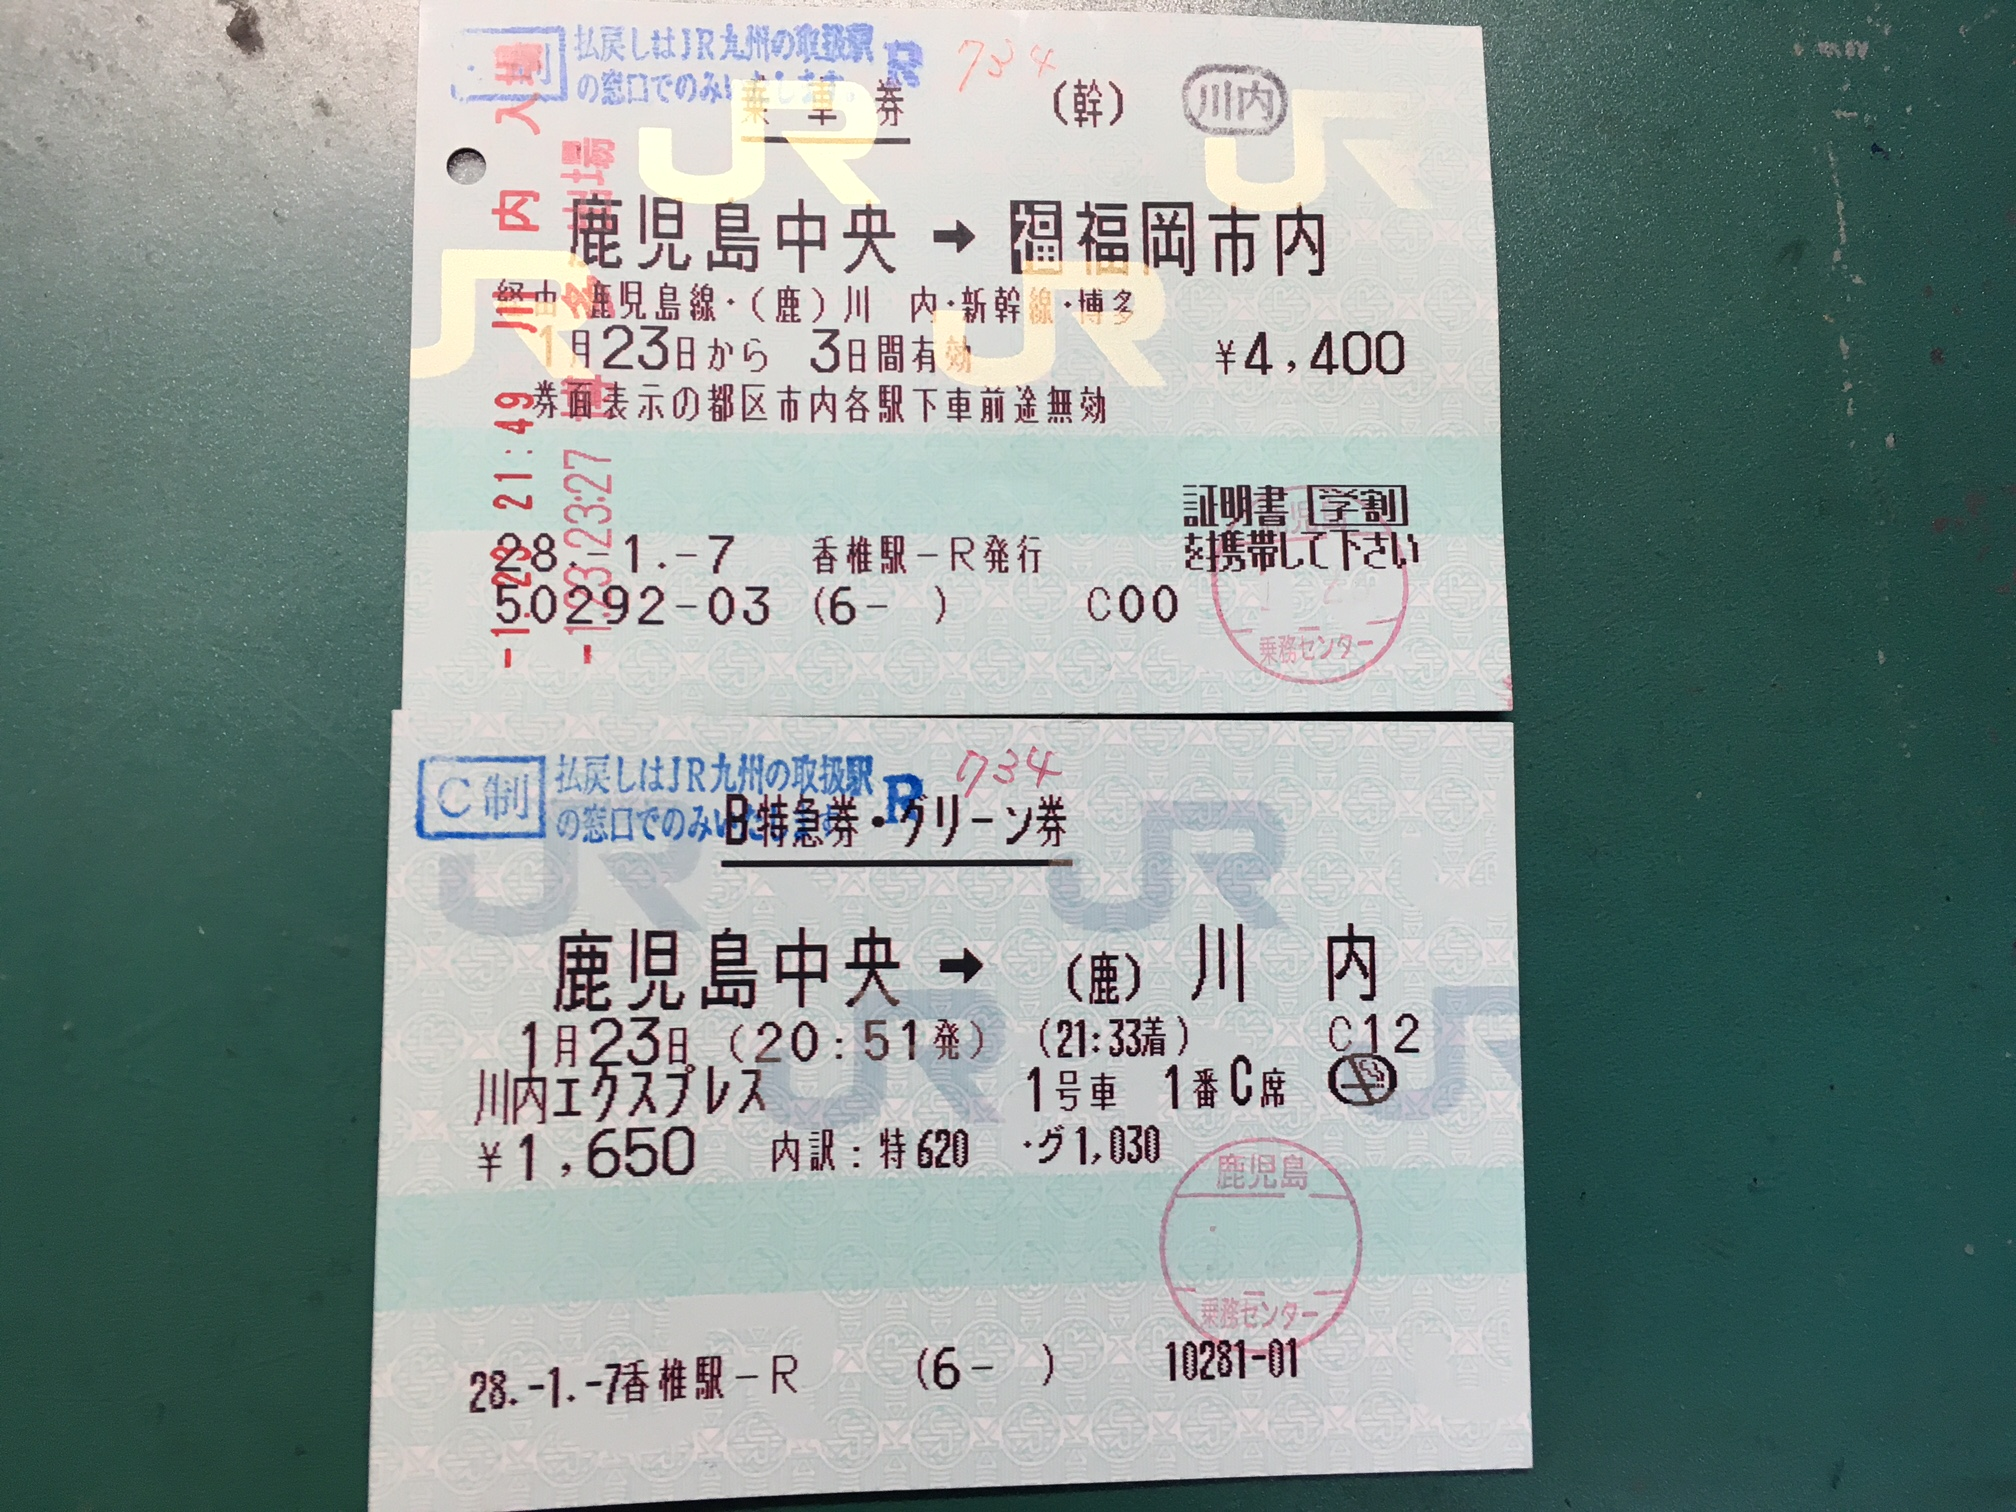 Sendai_ticket.jpg